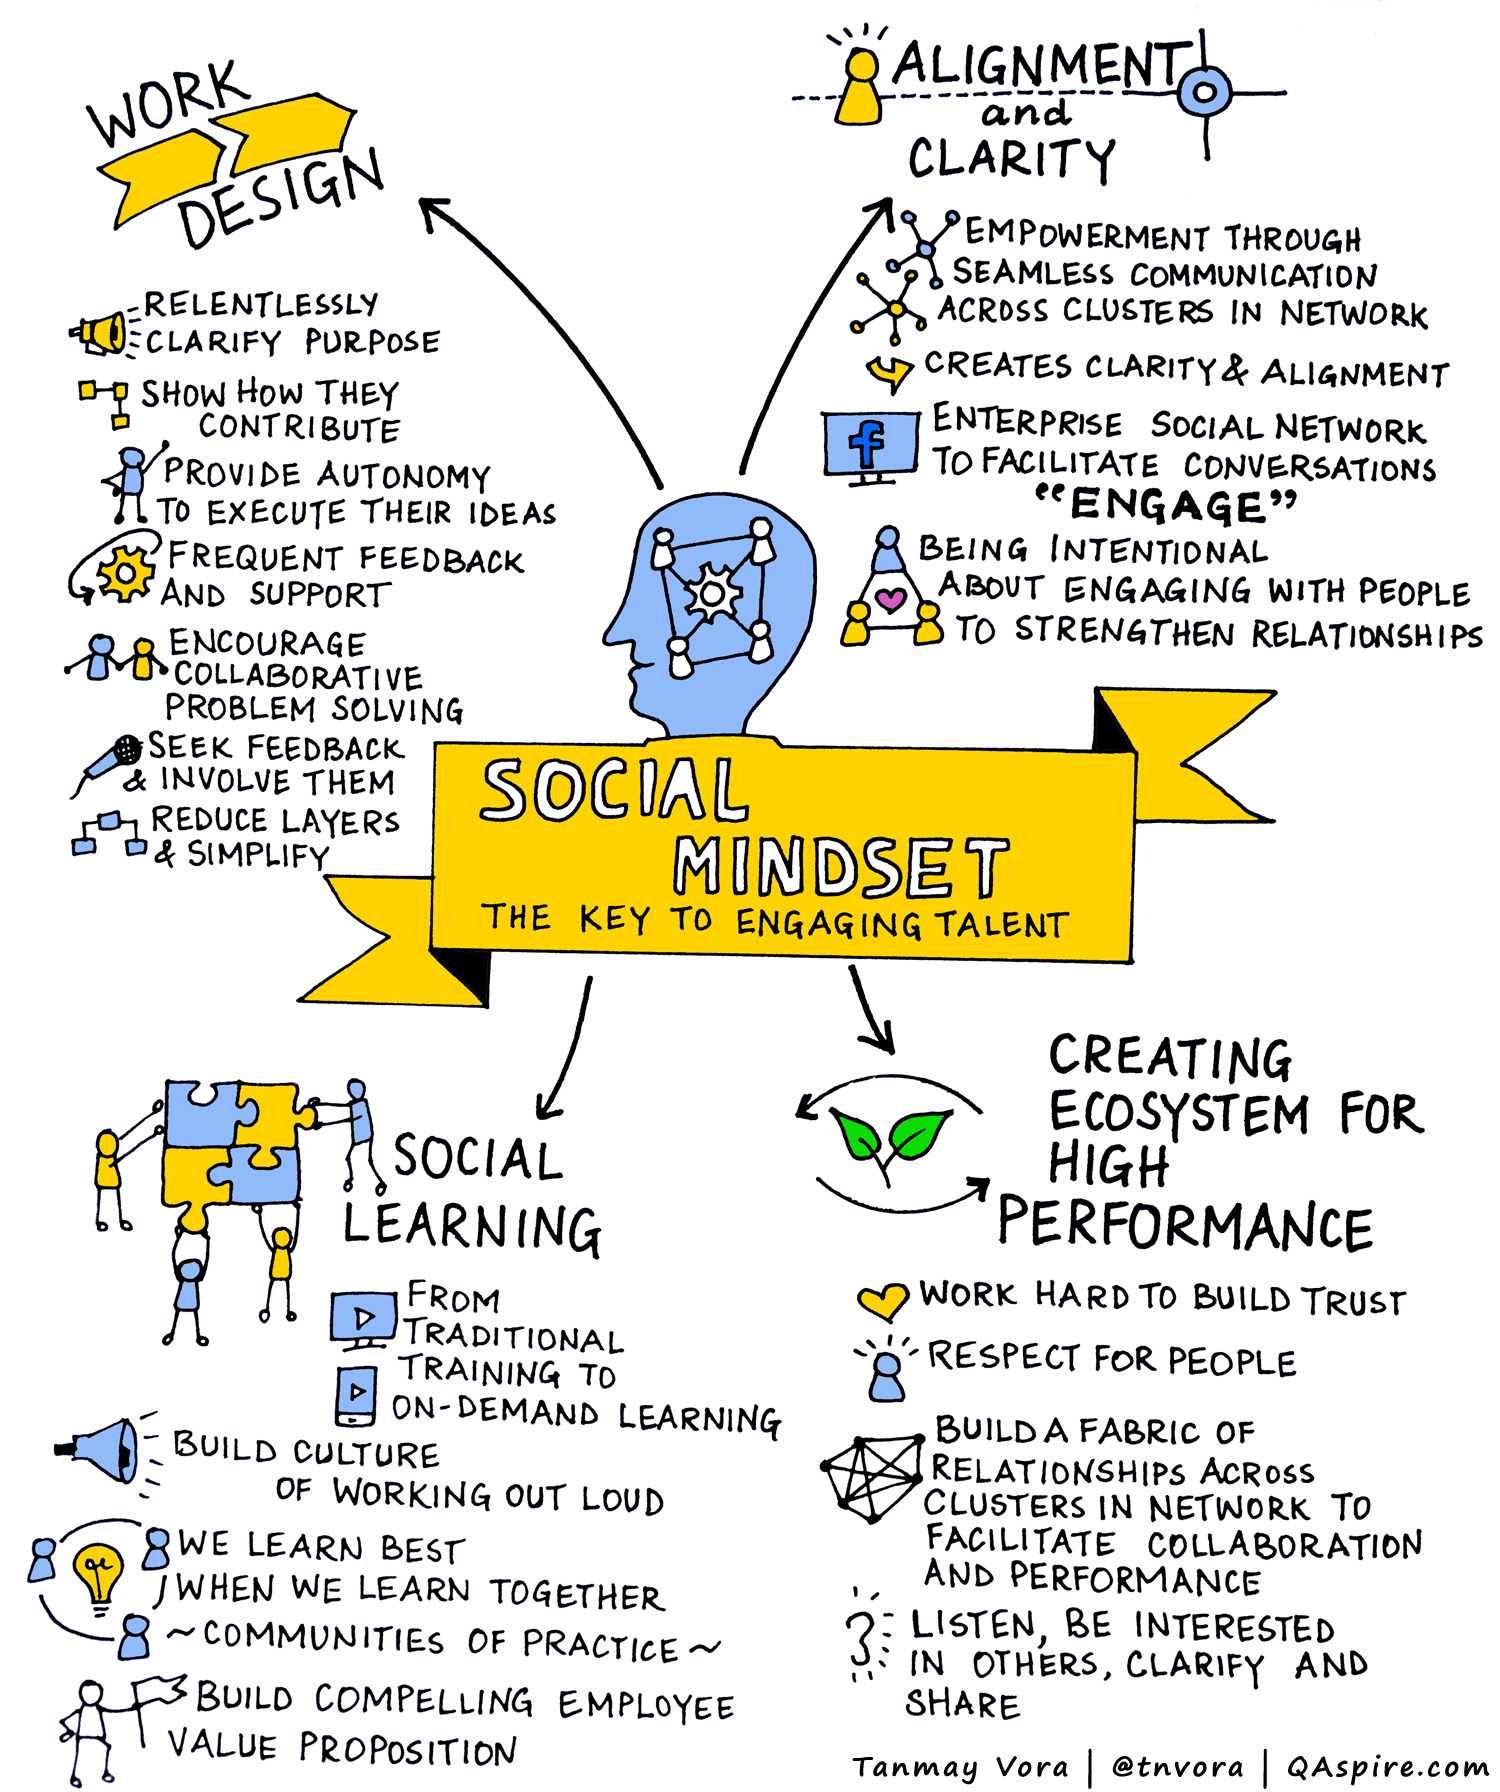 Social Mindset: The Key to Engaging Talent